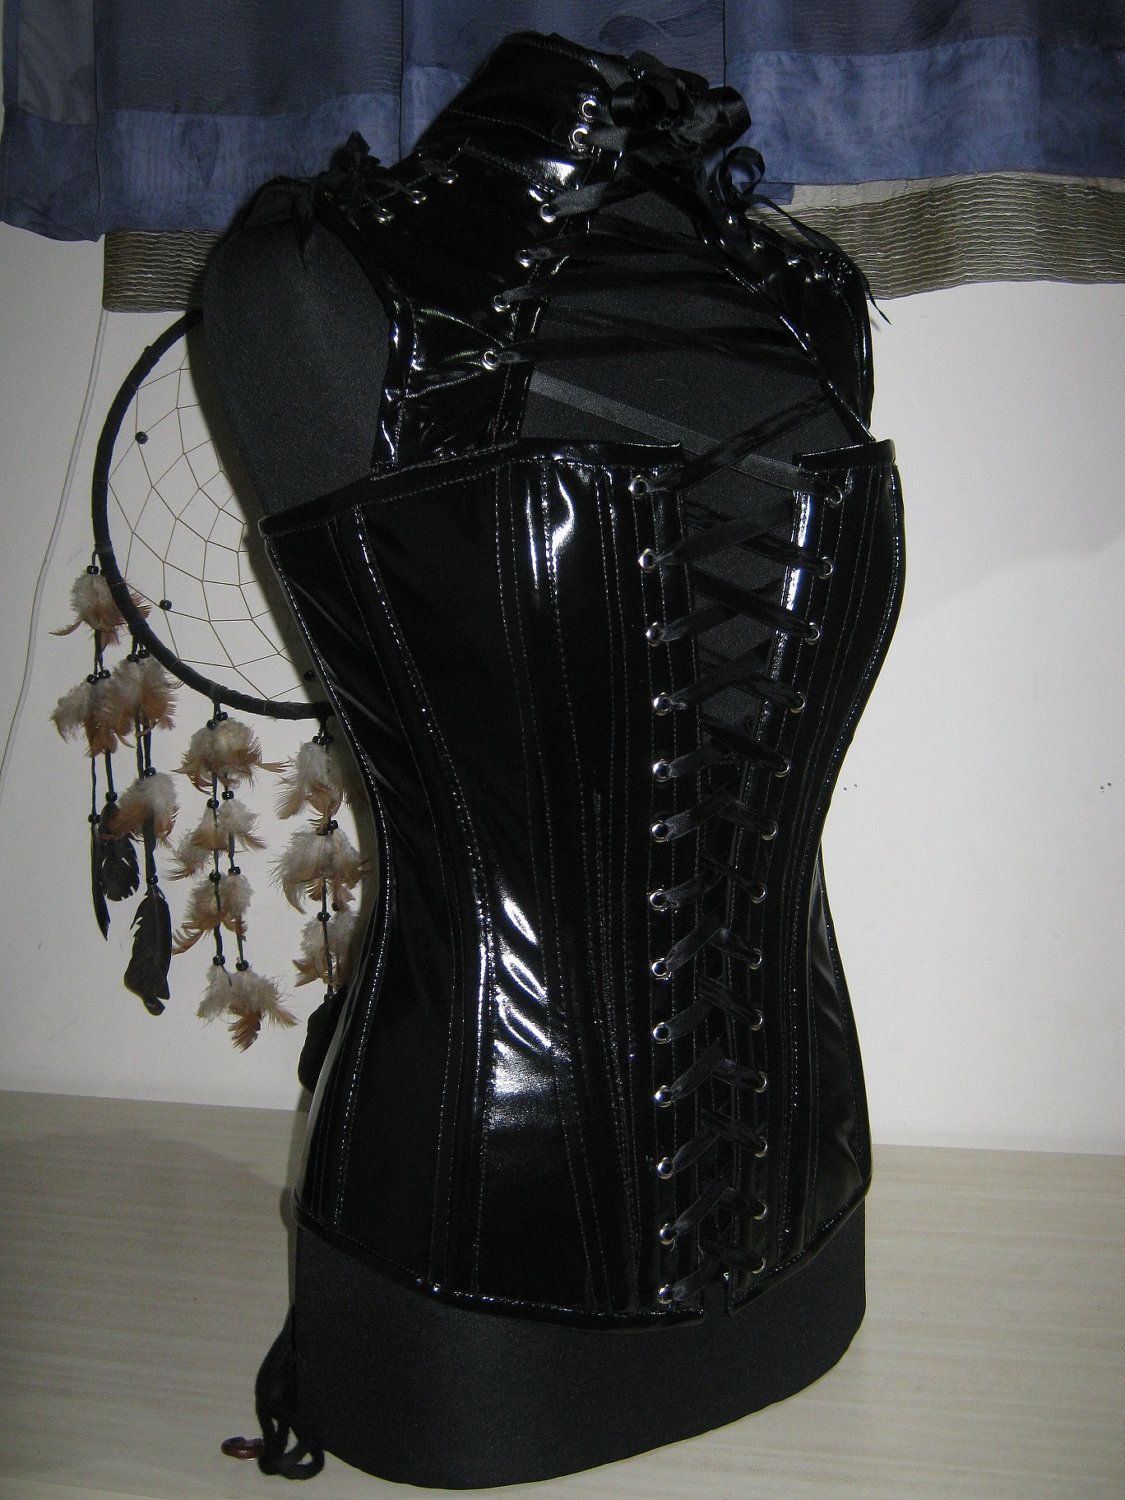 Black pvc CORSET - overbust very particupal, metal boning and CUSTOM MADE. $230.00, via Etsy.